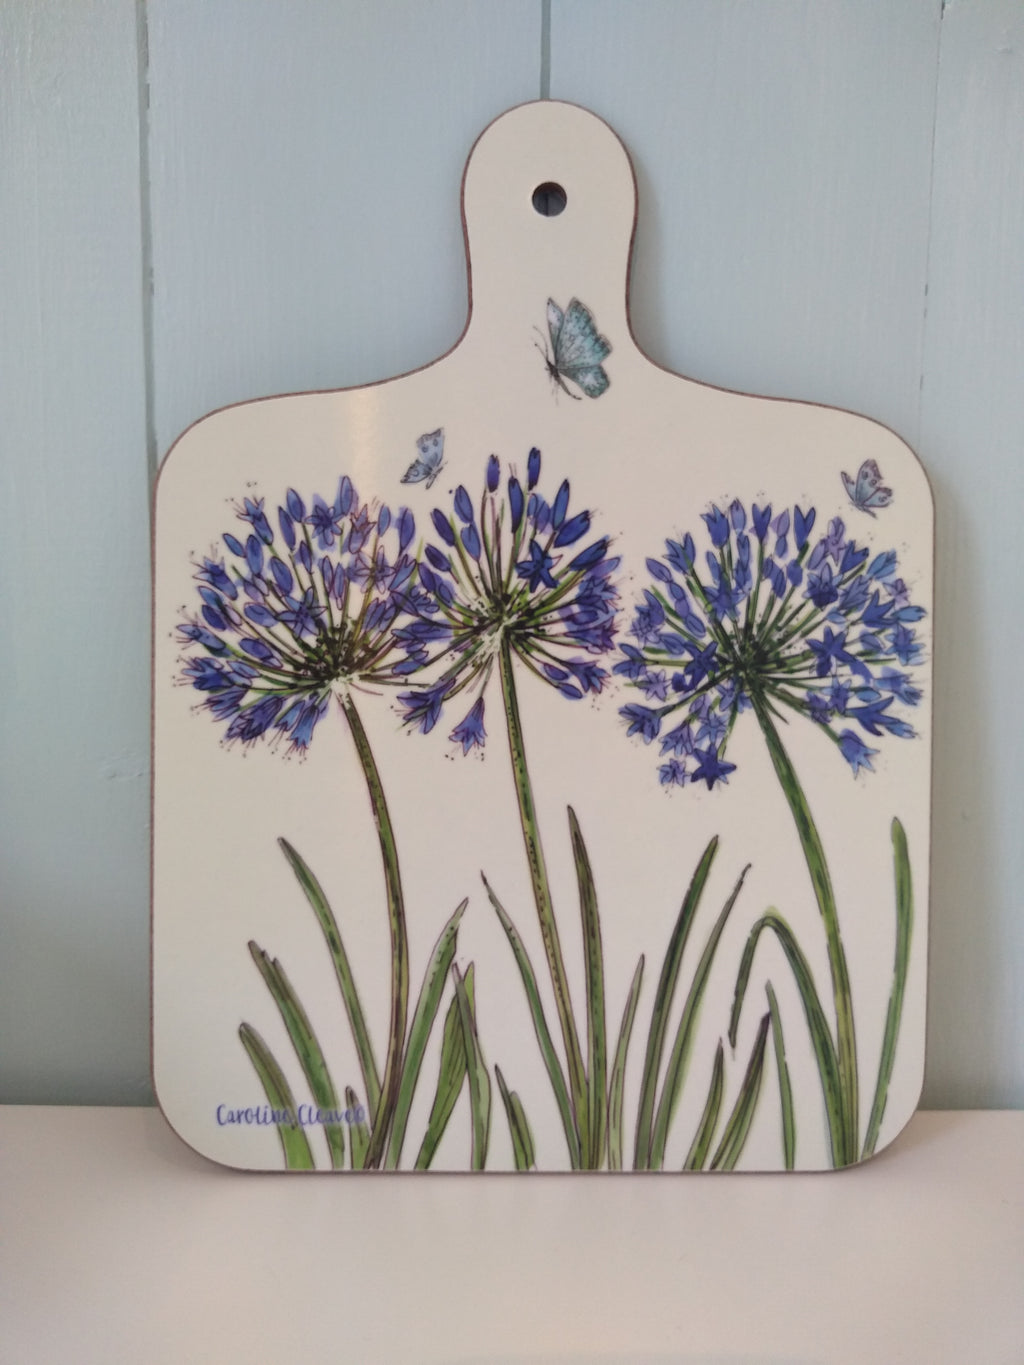 Caroline Cleave Agapanthus chopping board